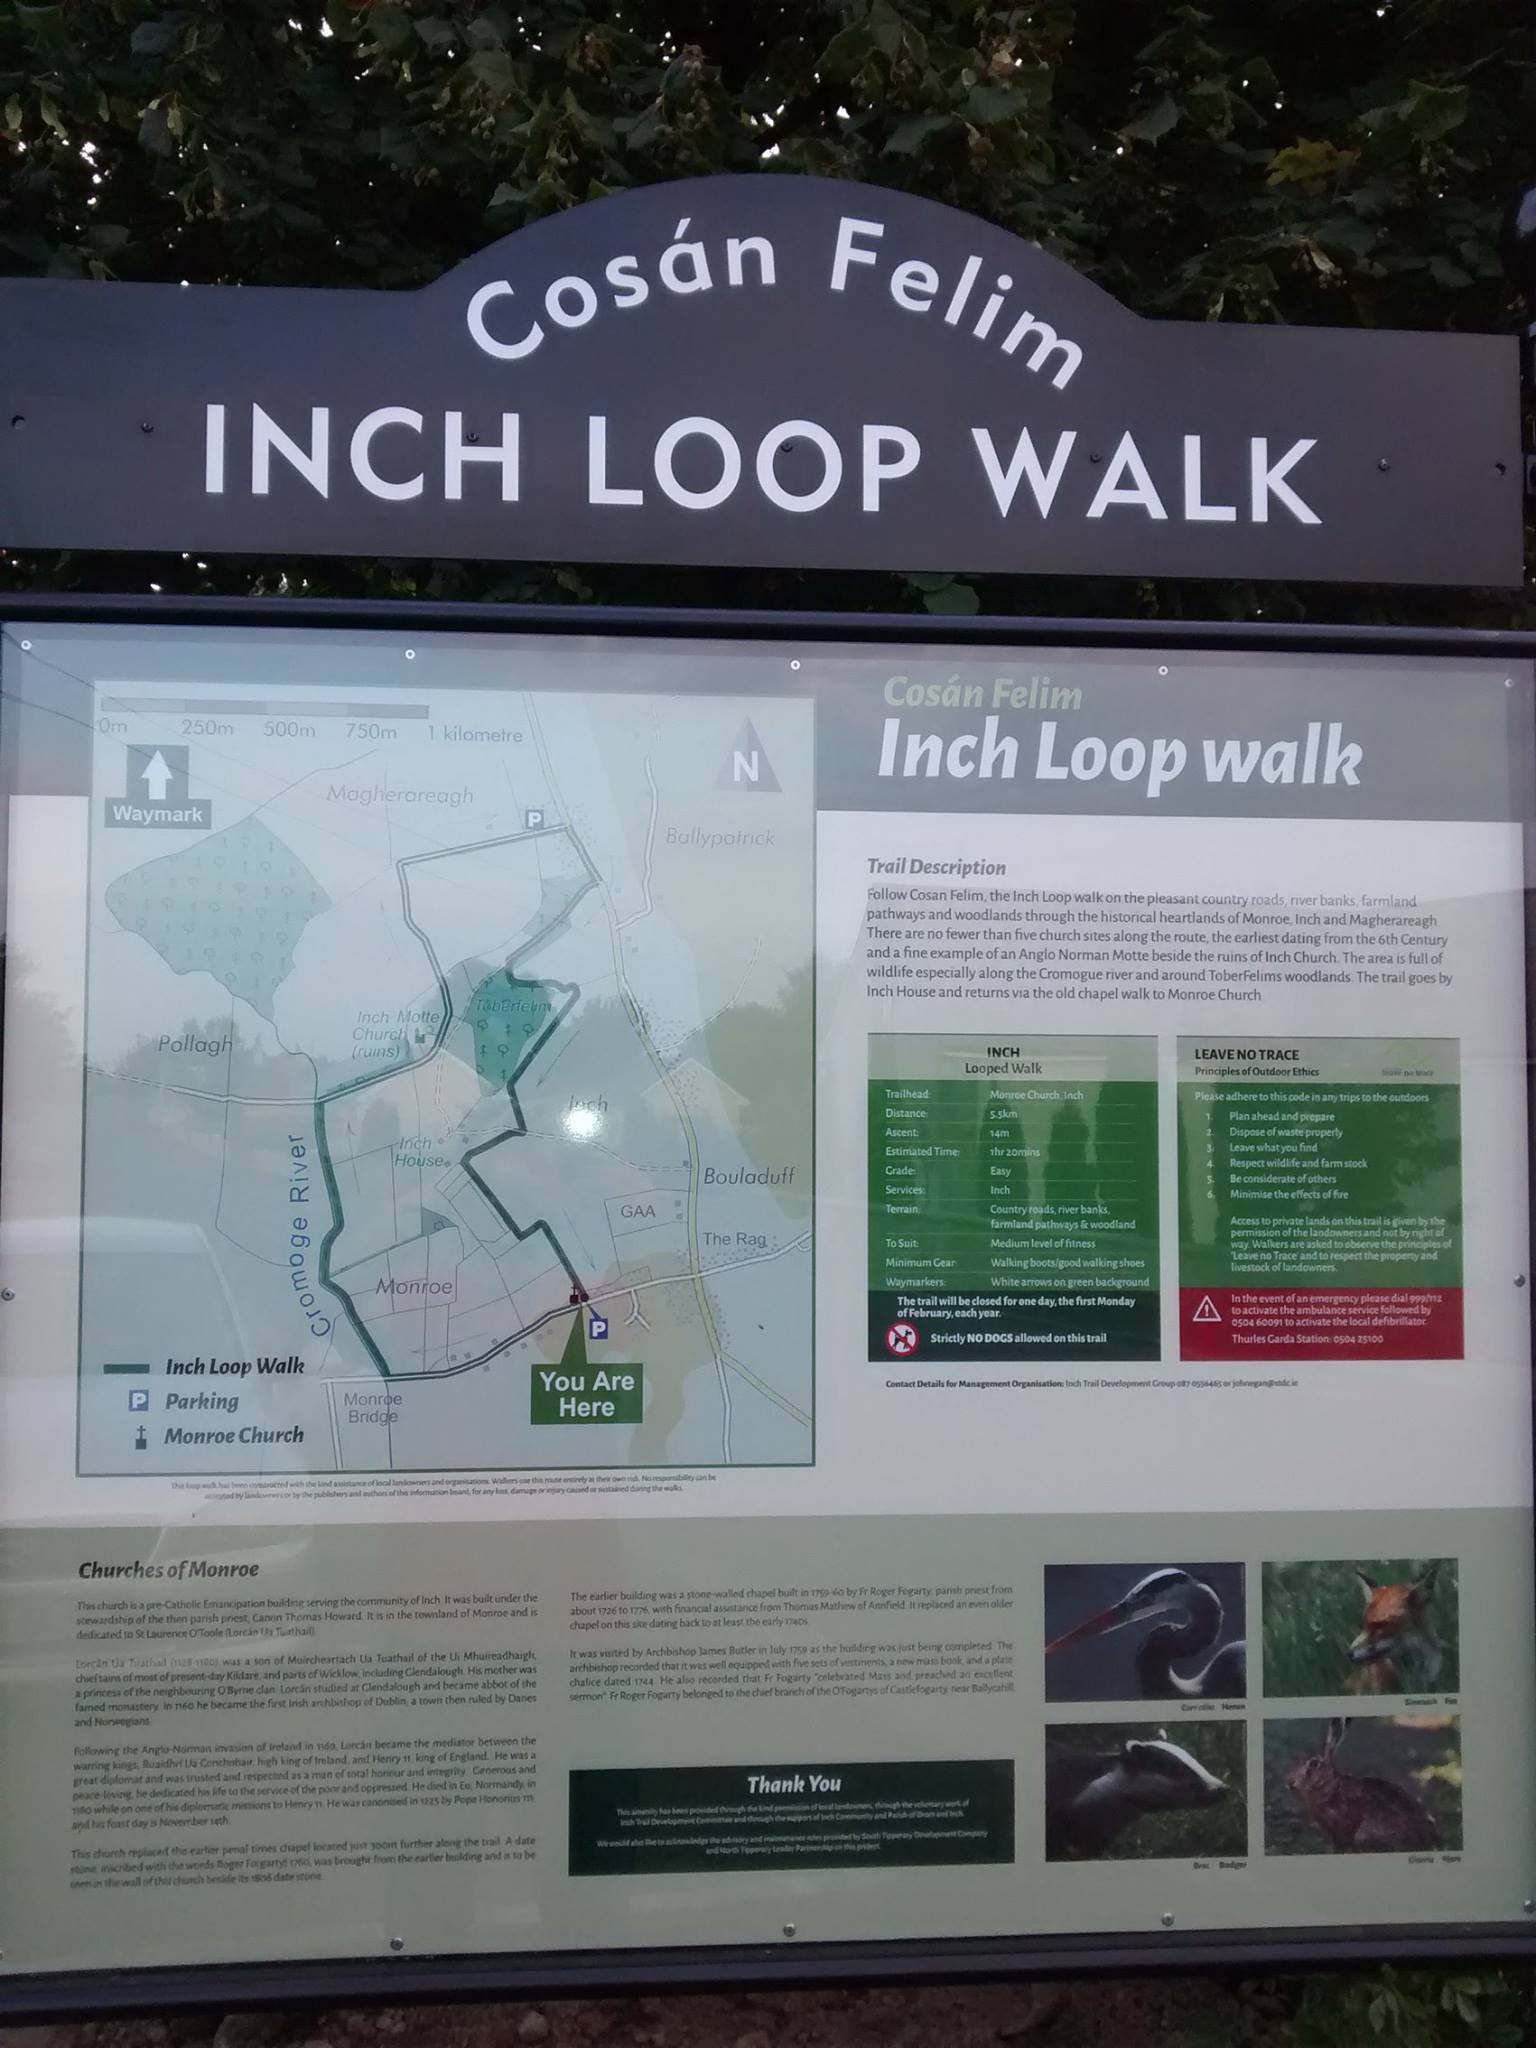 Inch Looped walk poster